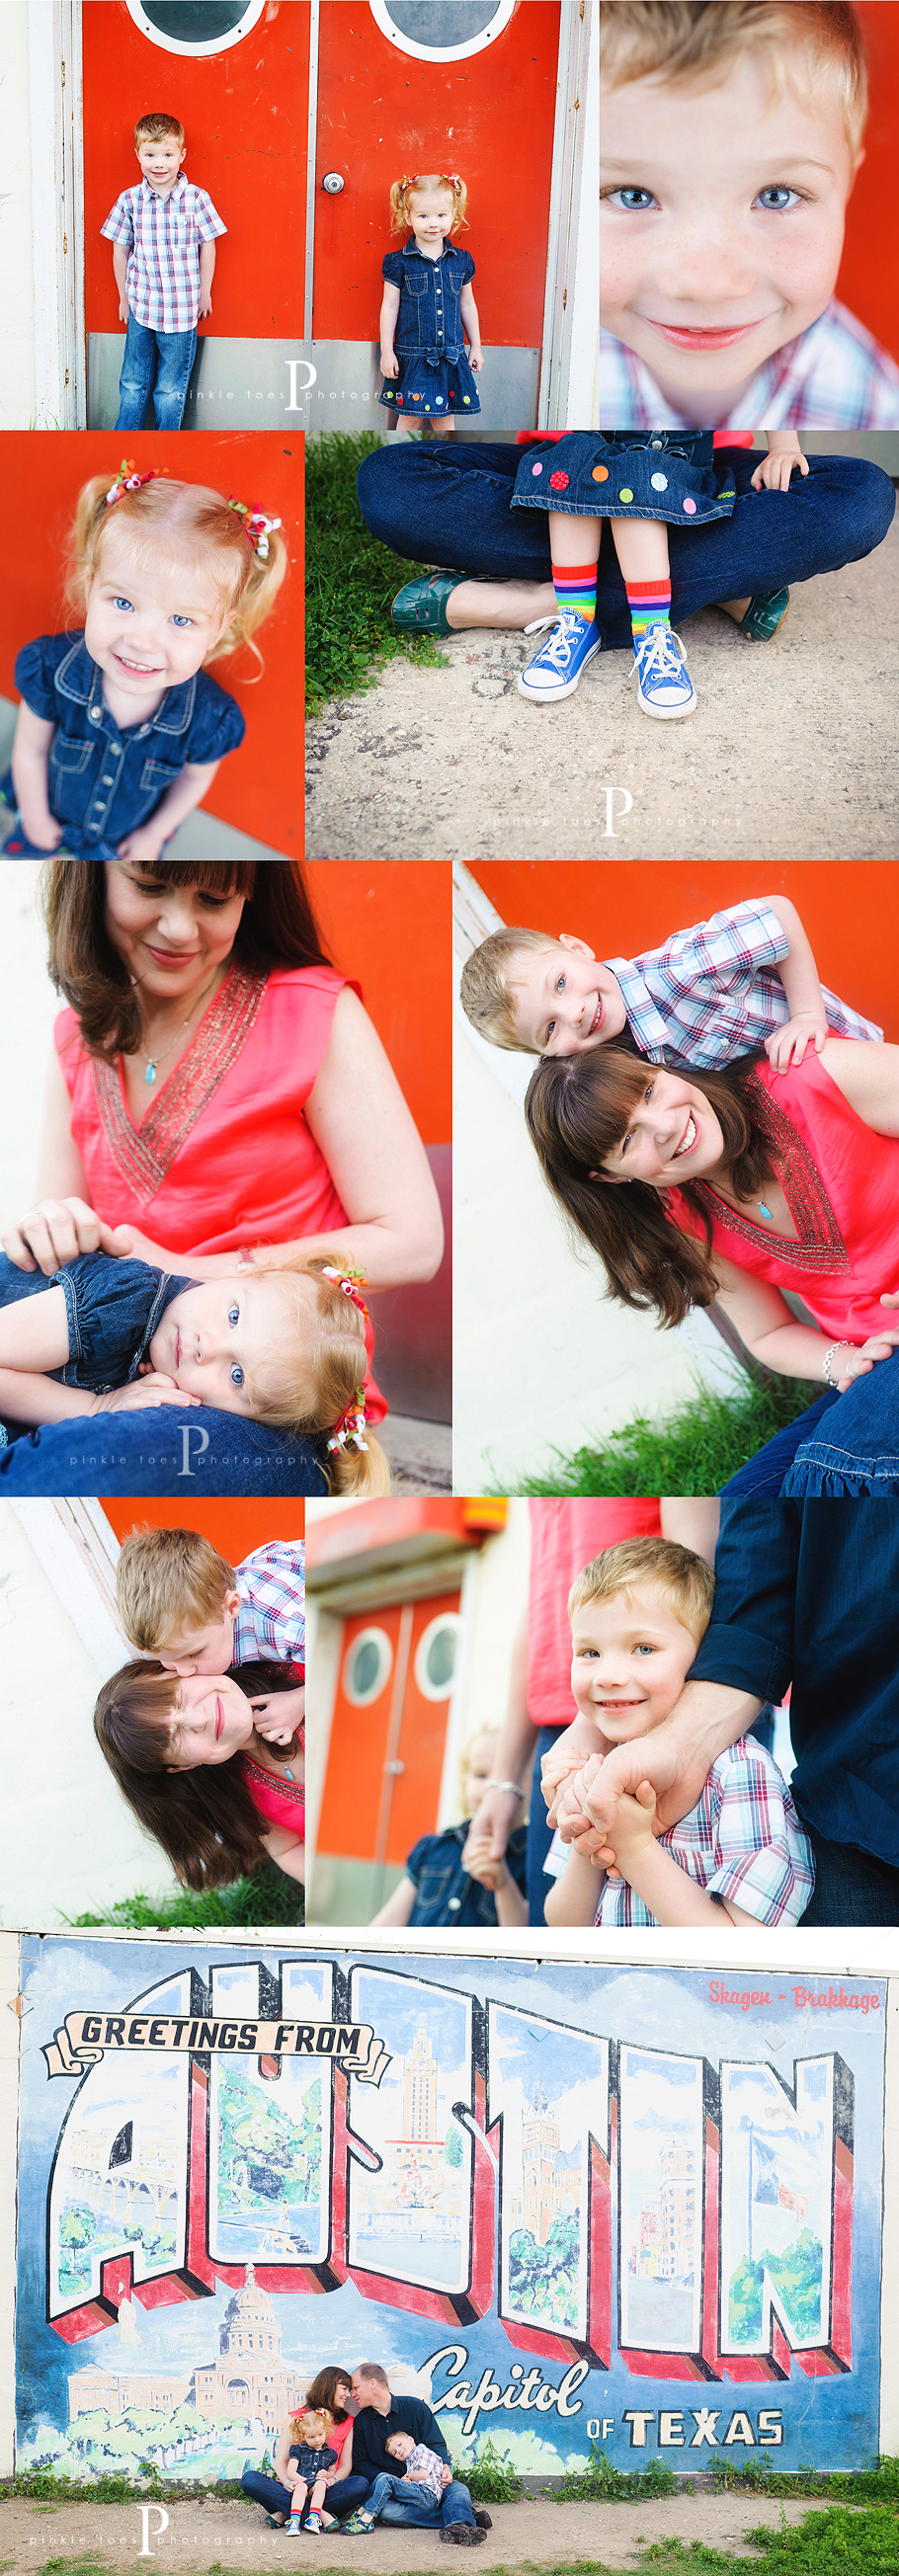 vo1-austin-modern-family-photographer-urban-lifestyle.jpg